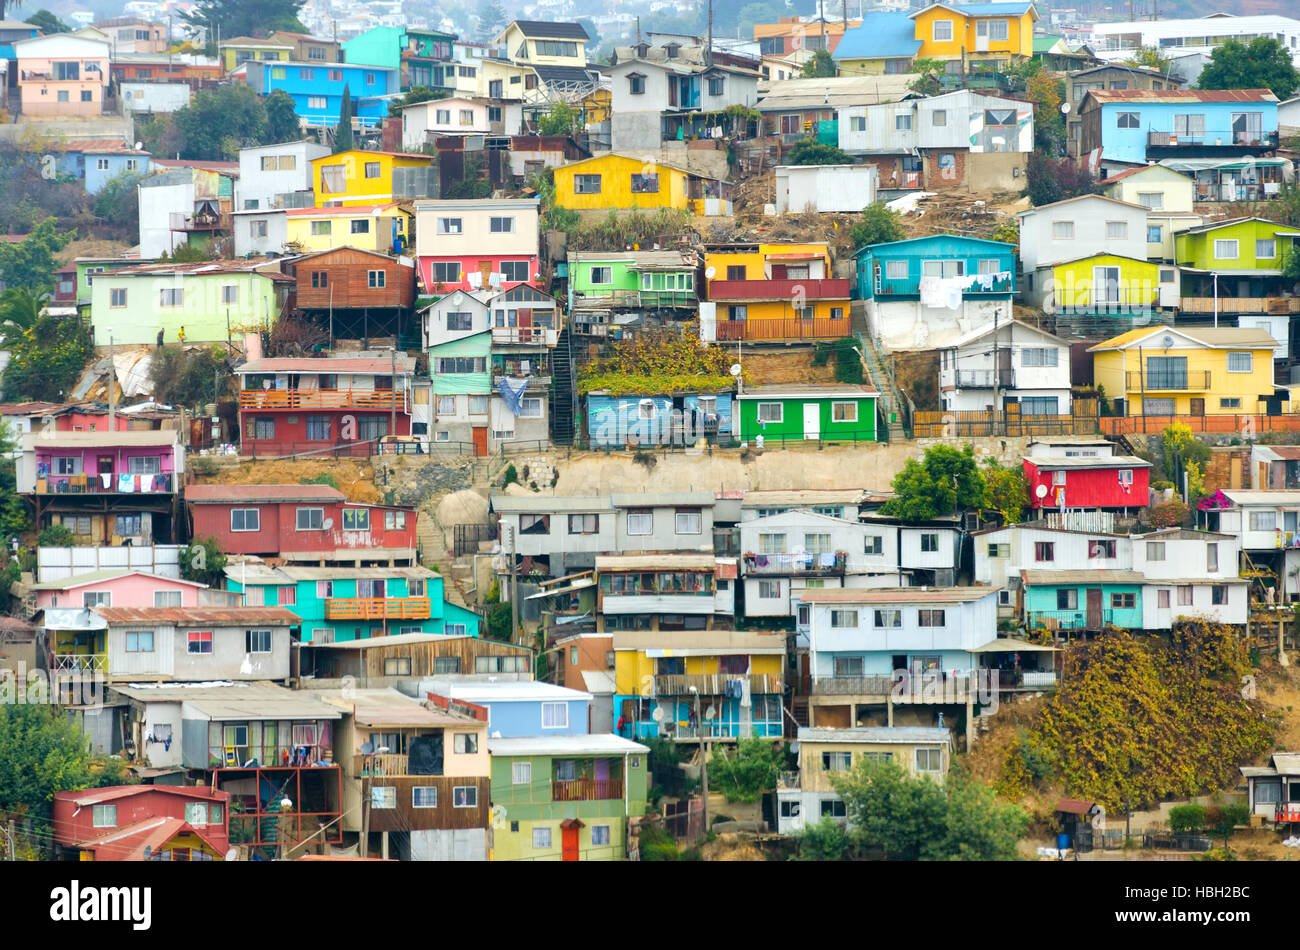 Brightly-colored houses tumble merrily down the sheer hills of Valparaiso, Chile - Stock Image